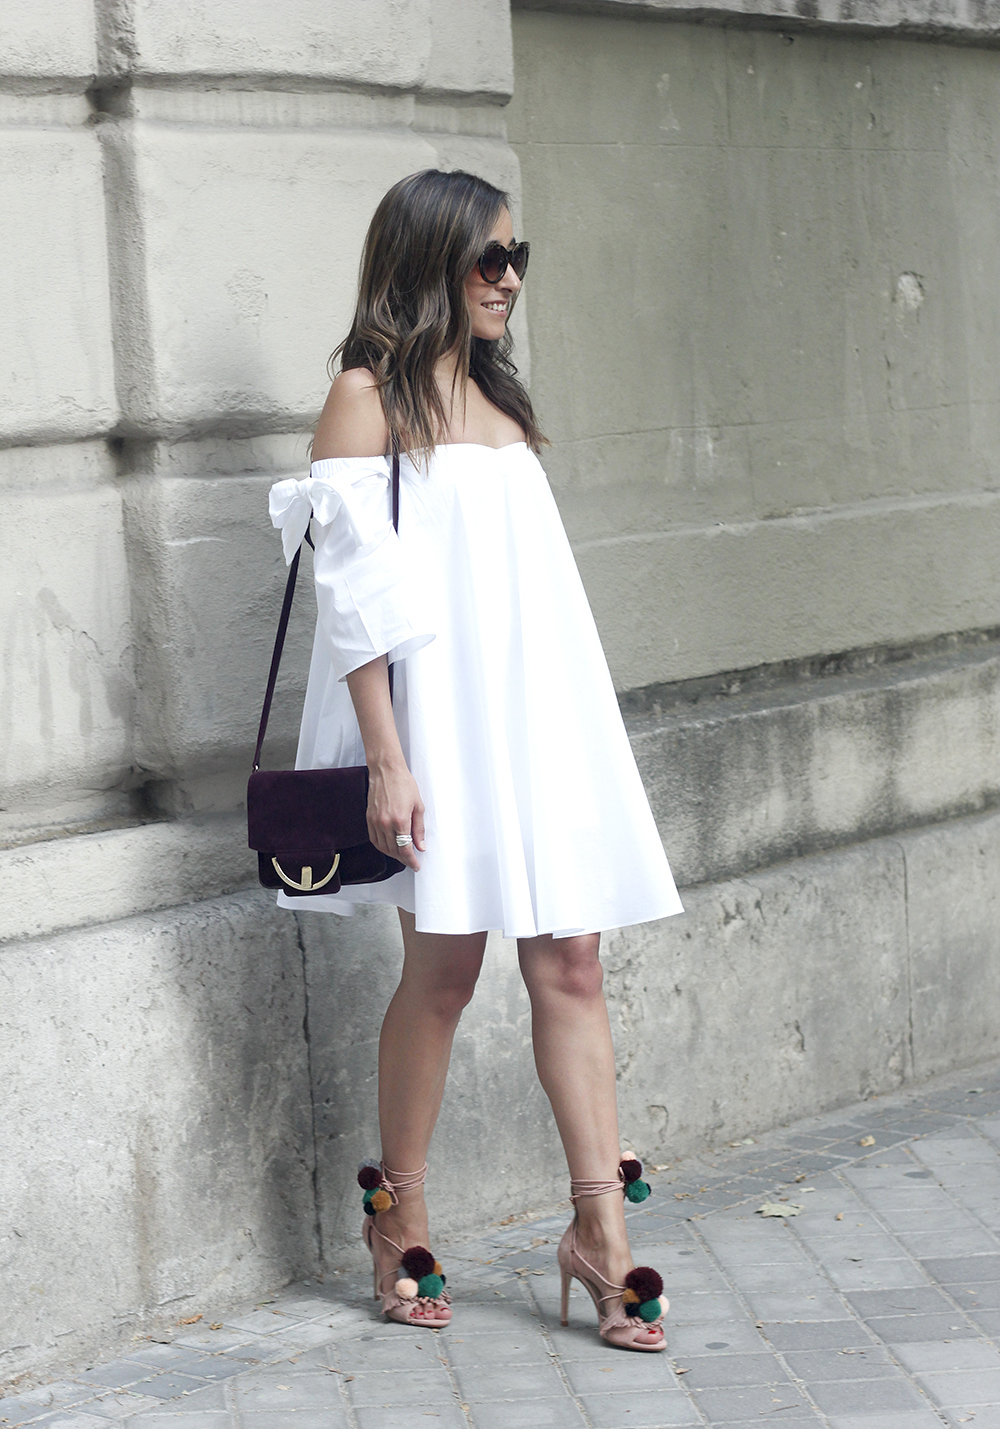 white off the shoulders dress sandals with pompoms burgundy uterqüe bag sunnies summer outfit12